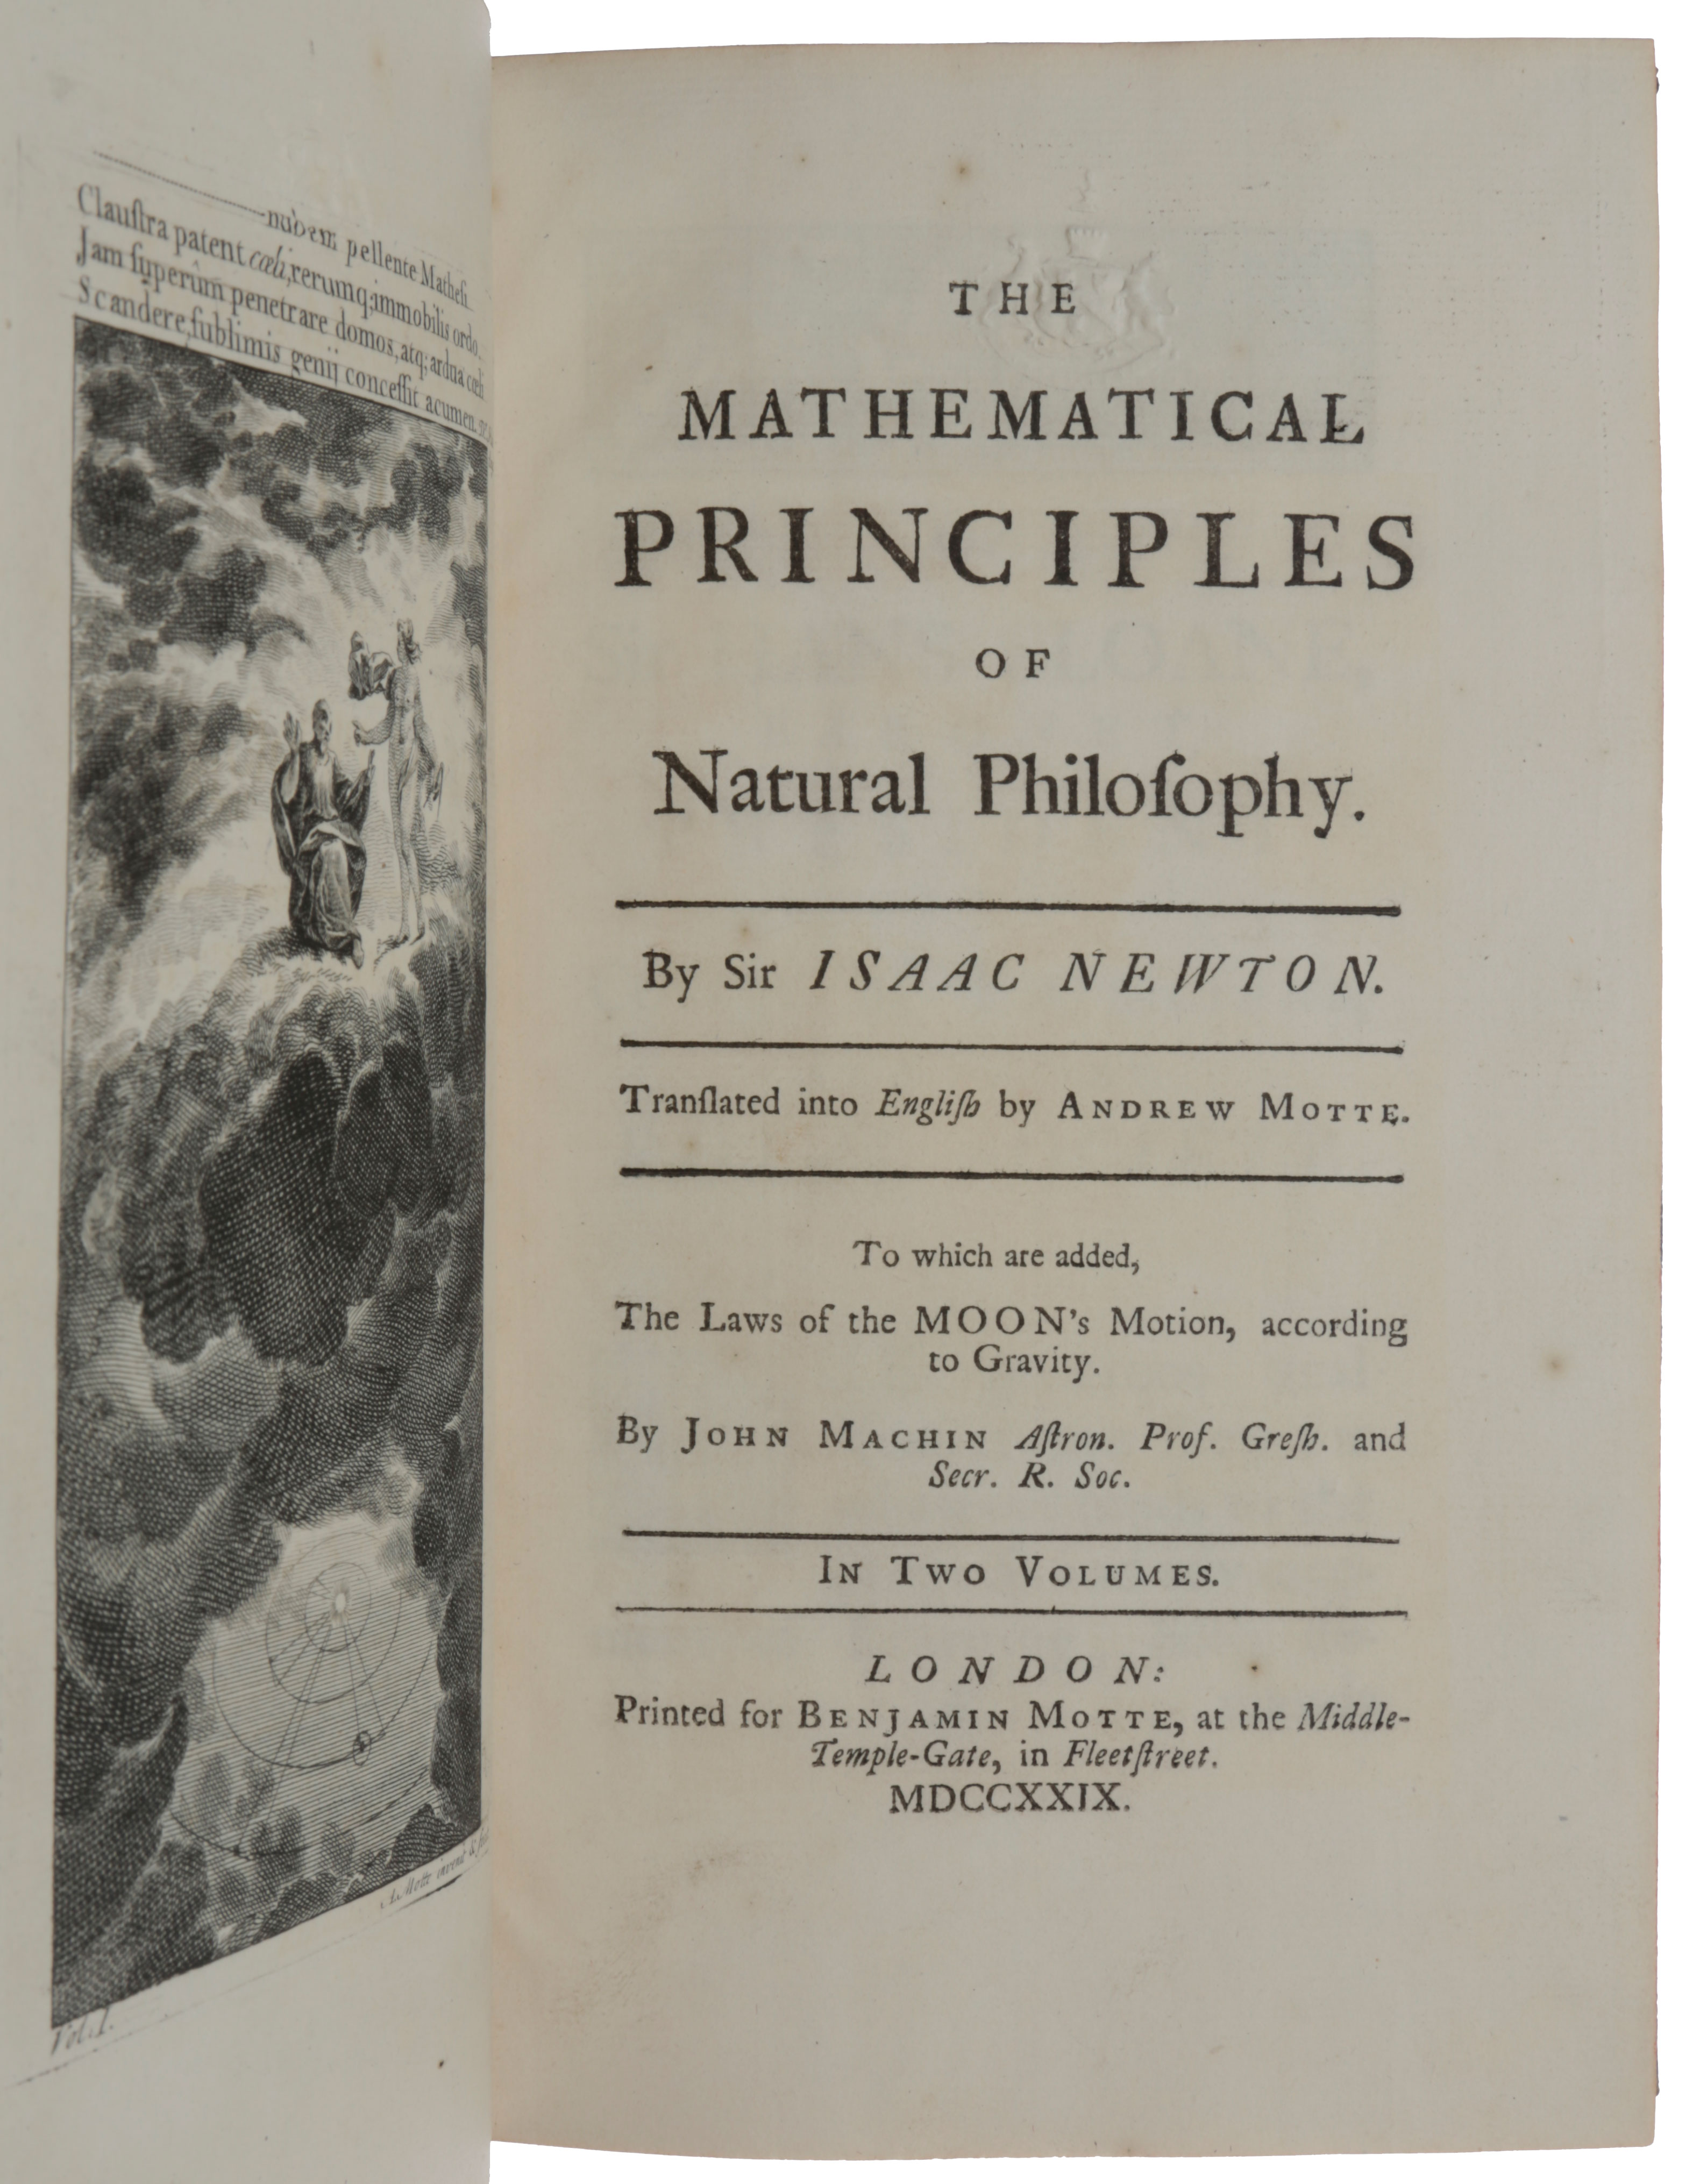 The Mathematical Principles of Natural Philosophy... Translated... by Andrew Motte. To which are added, the lawes of the moon's motion, according to gravity. By John Machin... In two volumes. Isaac NEWTON.